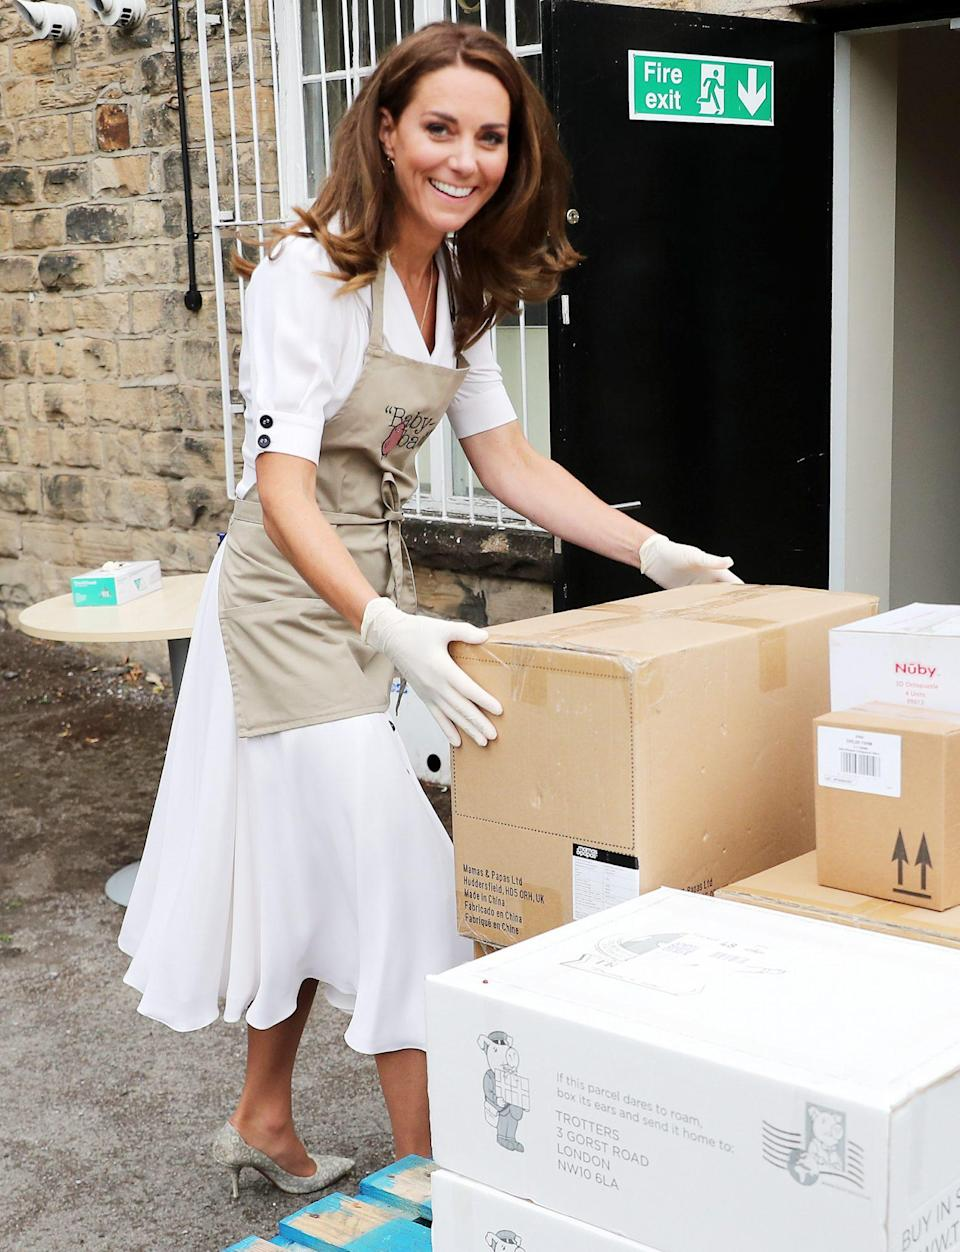 """<p>Kate Middleton helps unload supplies during a <a href=""""https://people.com/royals/kate-middleton-visits-baby-bank/"""" rel=""""nofollow noopener"""" target=""""_blank"""" data-ylk=""""slk:visit to Baby Basics"""" class=""""link rapid-noclick-resp"""">visit to Baby Basics</a>, a charity that acts as a food bank for baby supplies, in Sheffield, England, on Tuesday. </p>"""